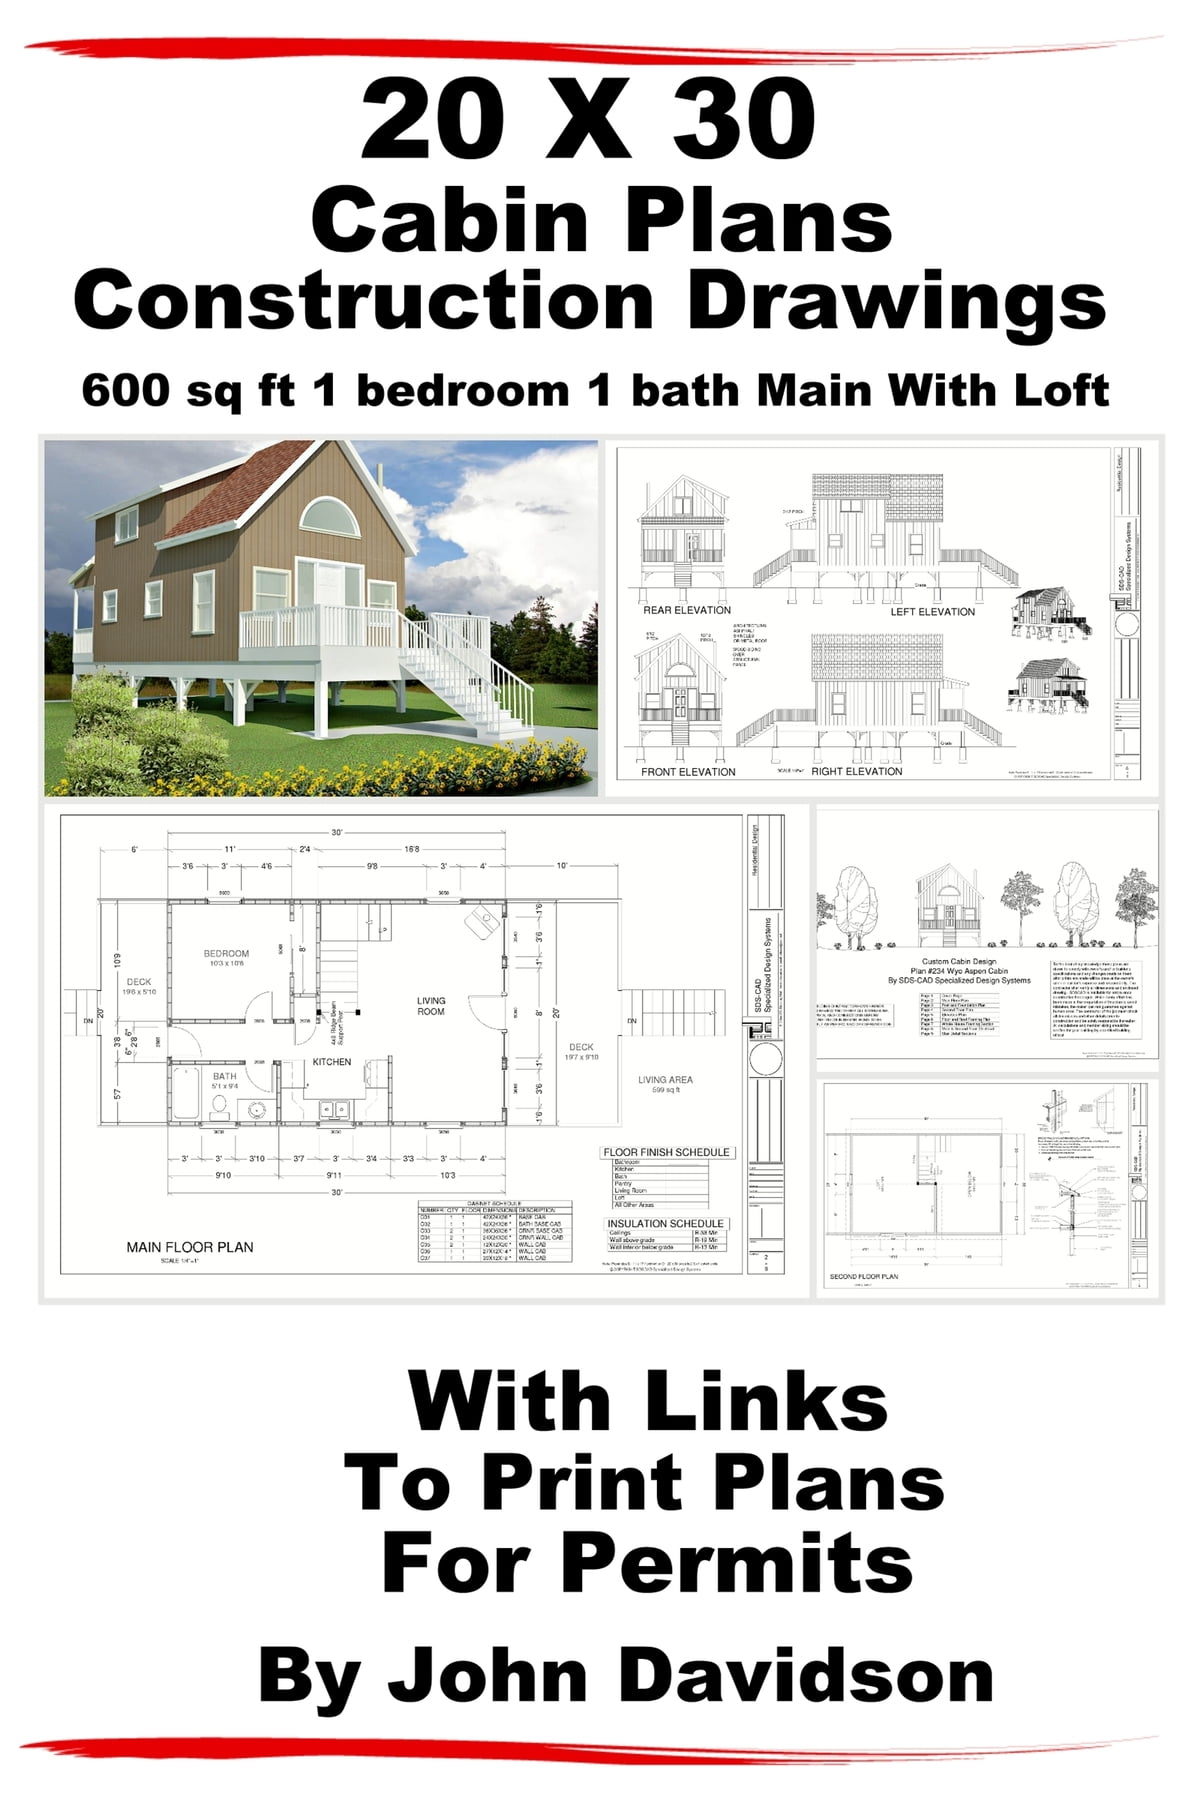 20 x 30 Cabin Plans Blueprints Construction Drawings 600 sq ft 1 bedroom 1  bath Main With Loft eBook by John Davidson   9781310815058   Rakuten Kobo. 20 x 30 Cabin Plans Blueprints Construction Drawings 600 sq ft 1